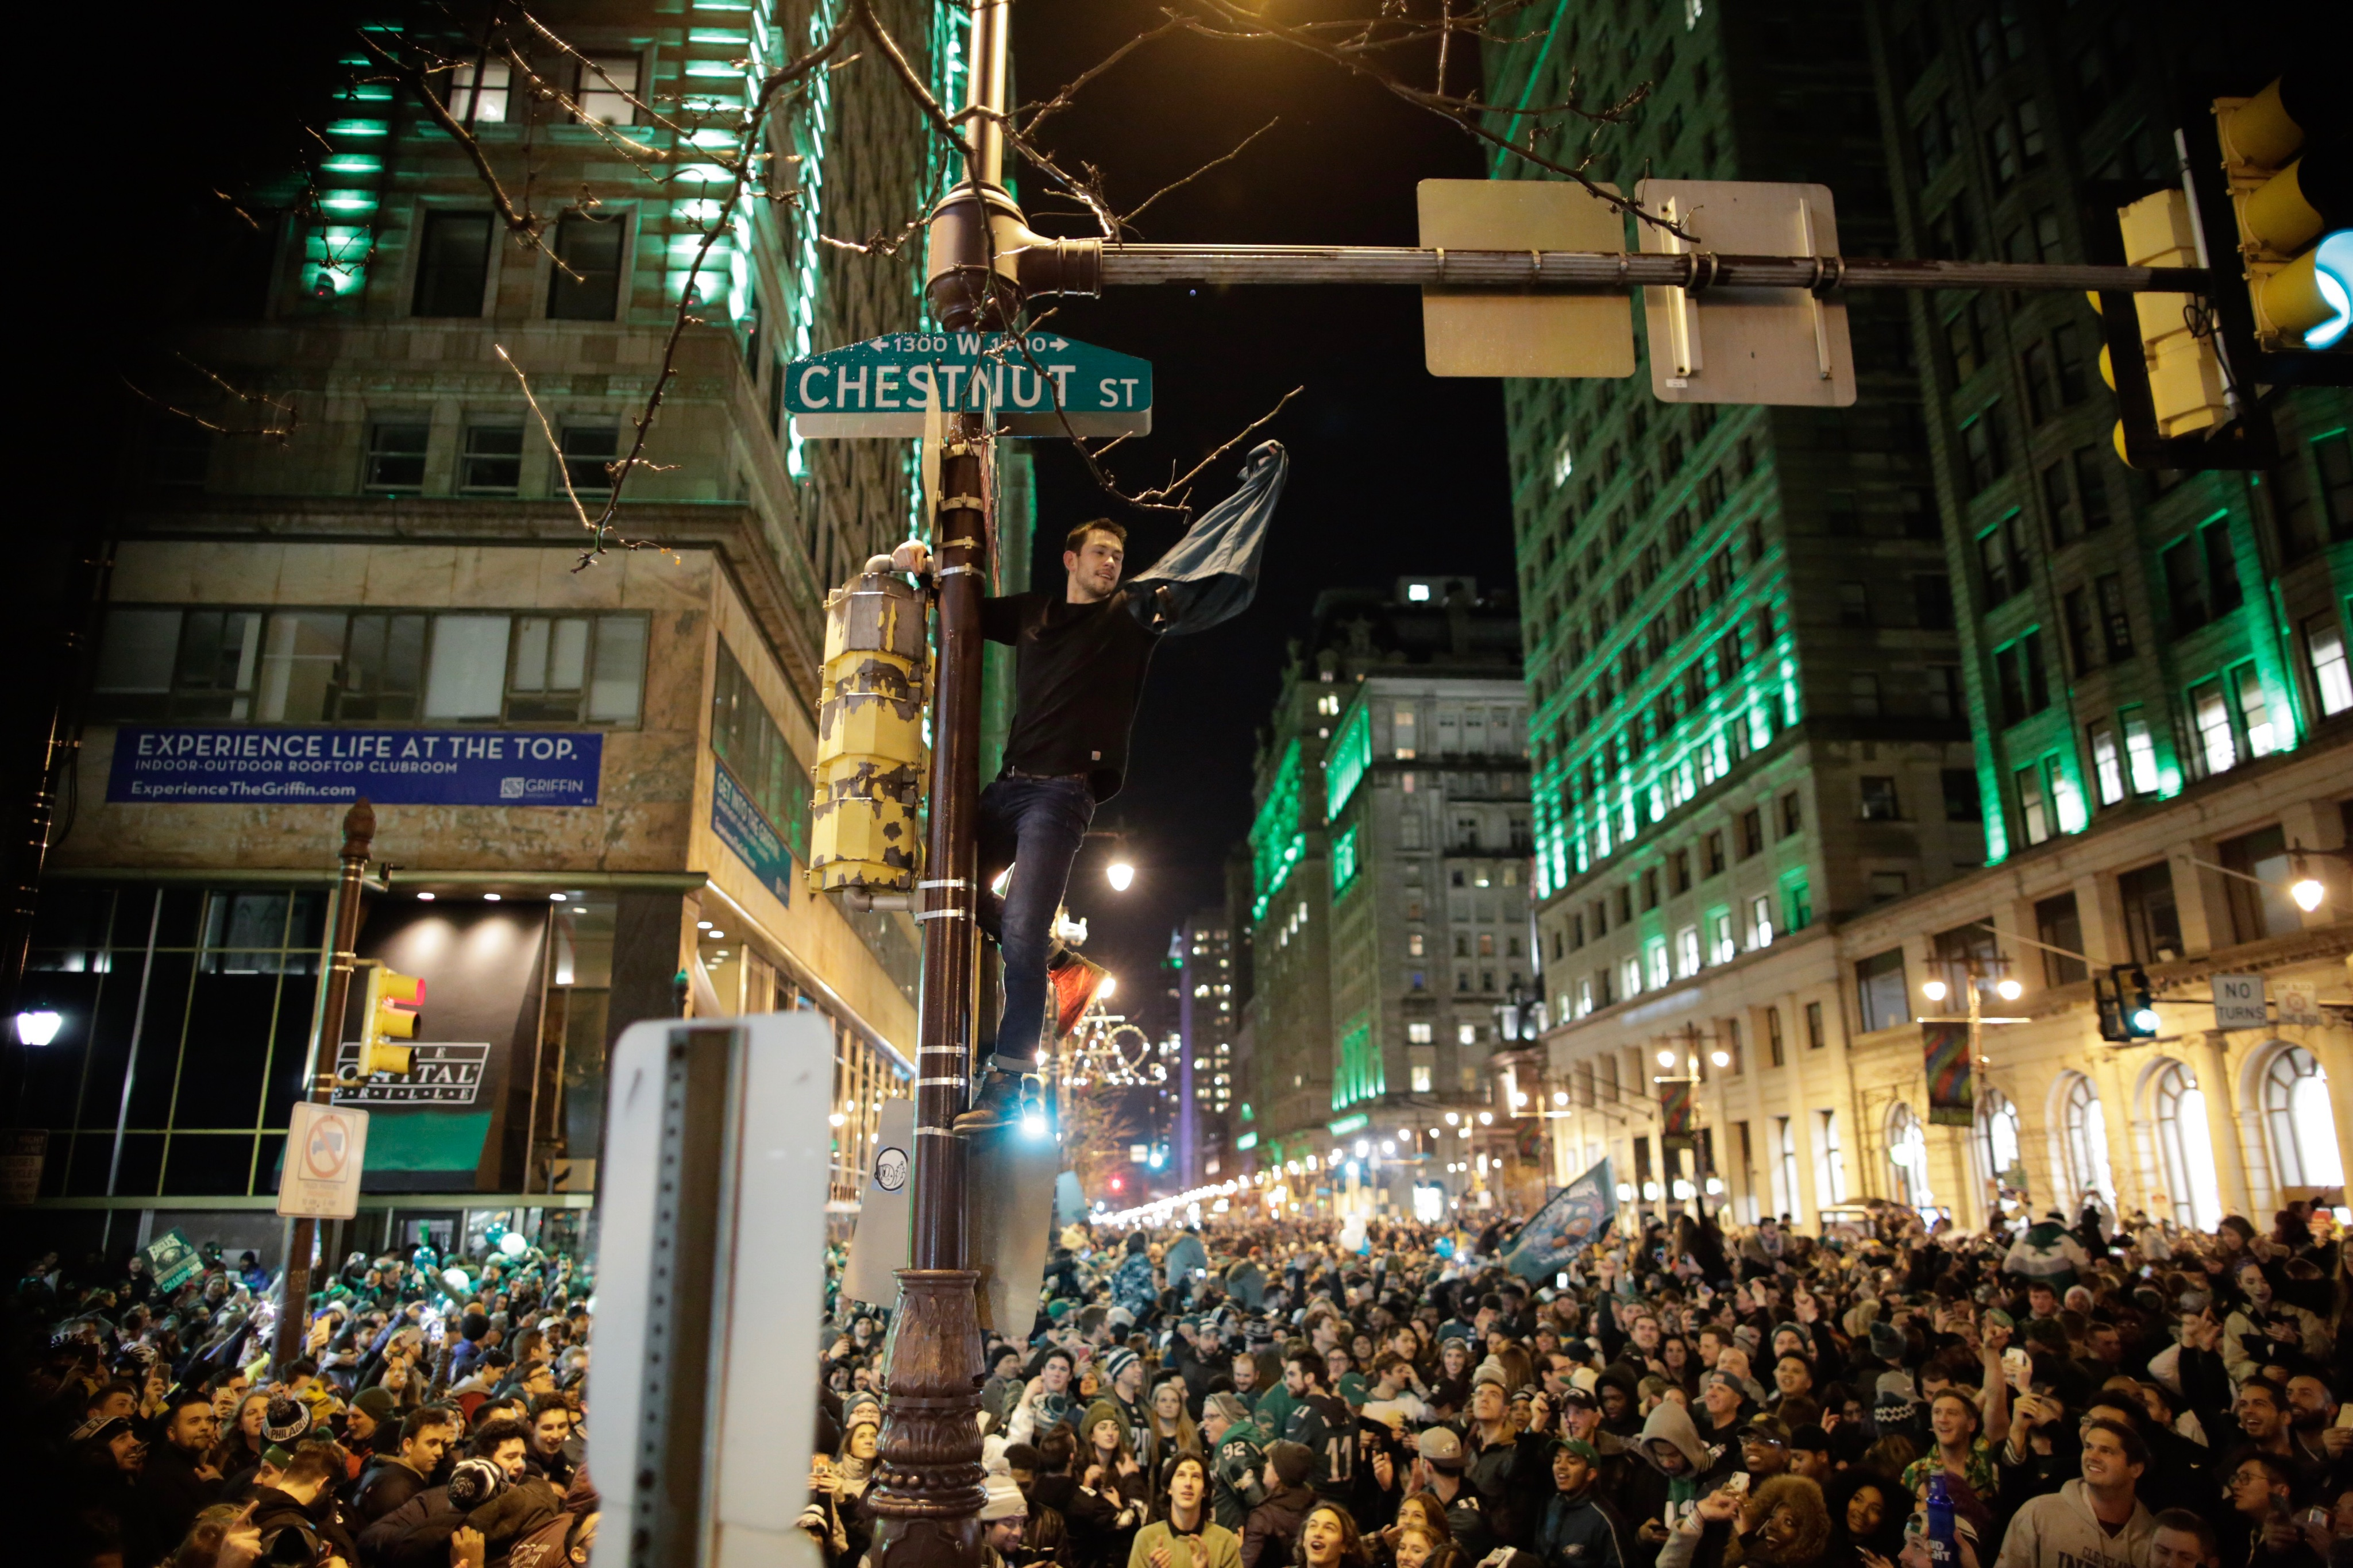 Philadelphia Eagles' Fans Gather To Watch Their Team In Super Bowl LII Against The New England Patriots